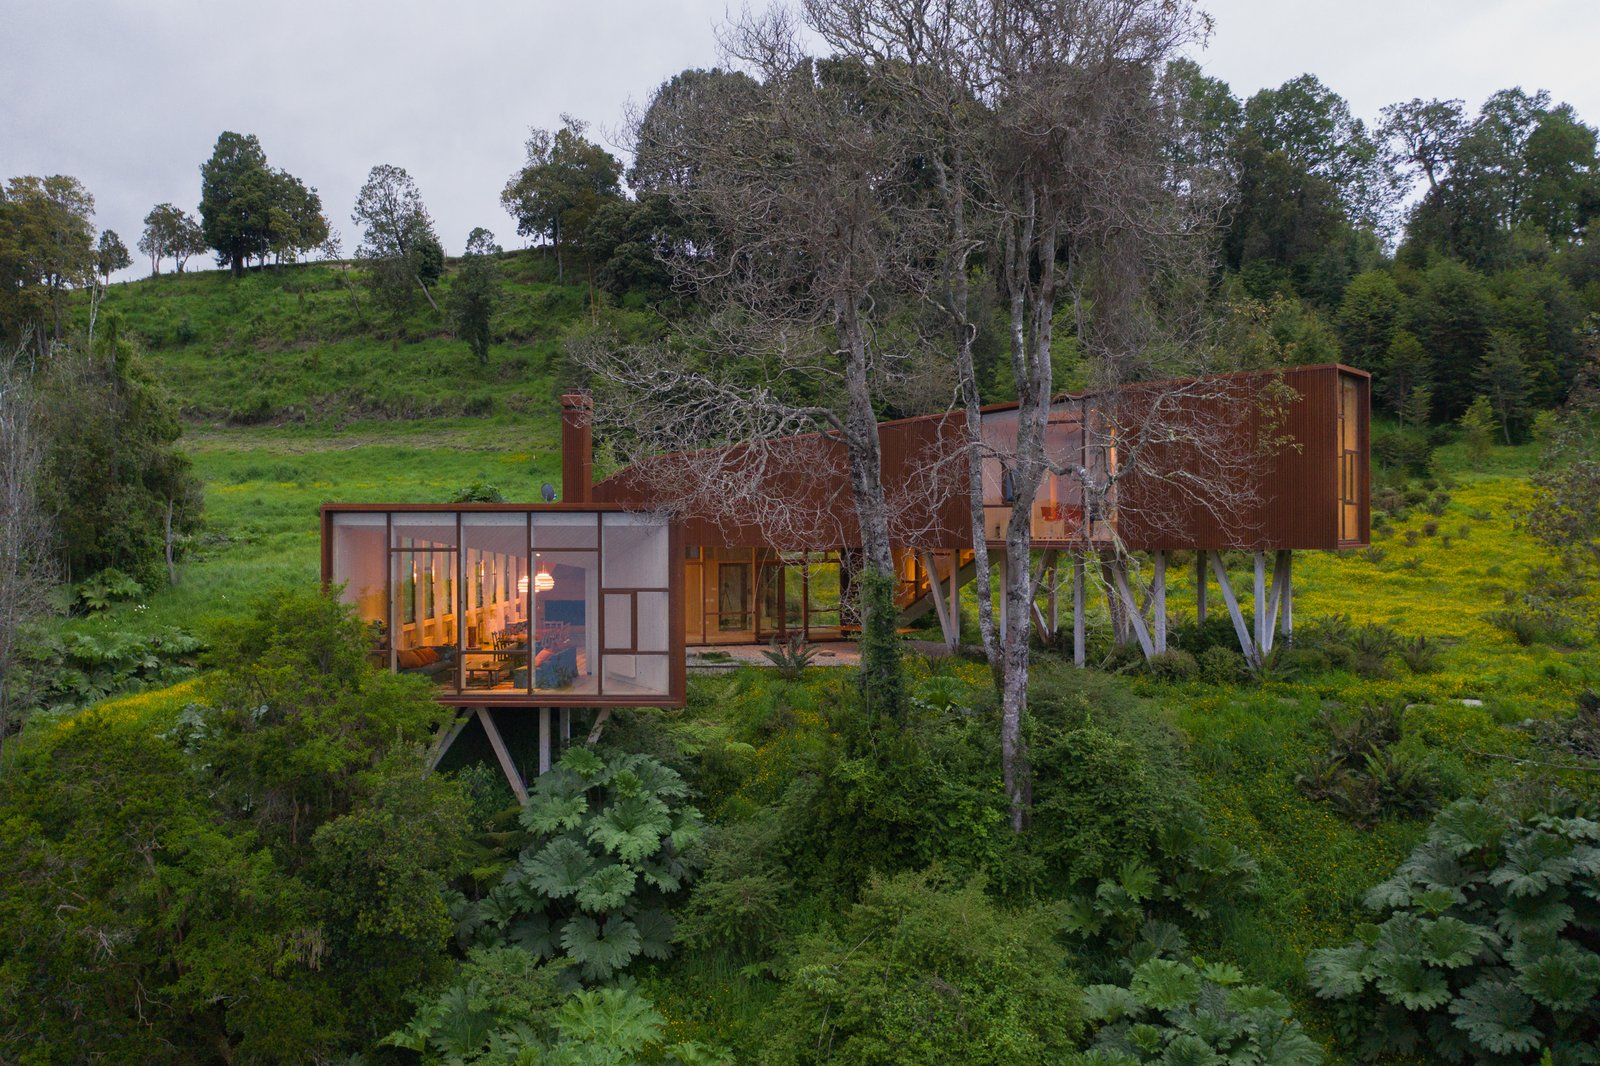 A robust Cor-Ten steel home rises from the rugged landscape.